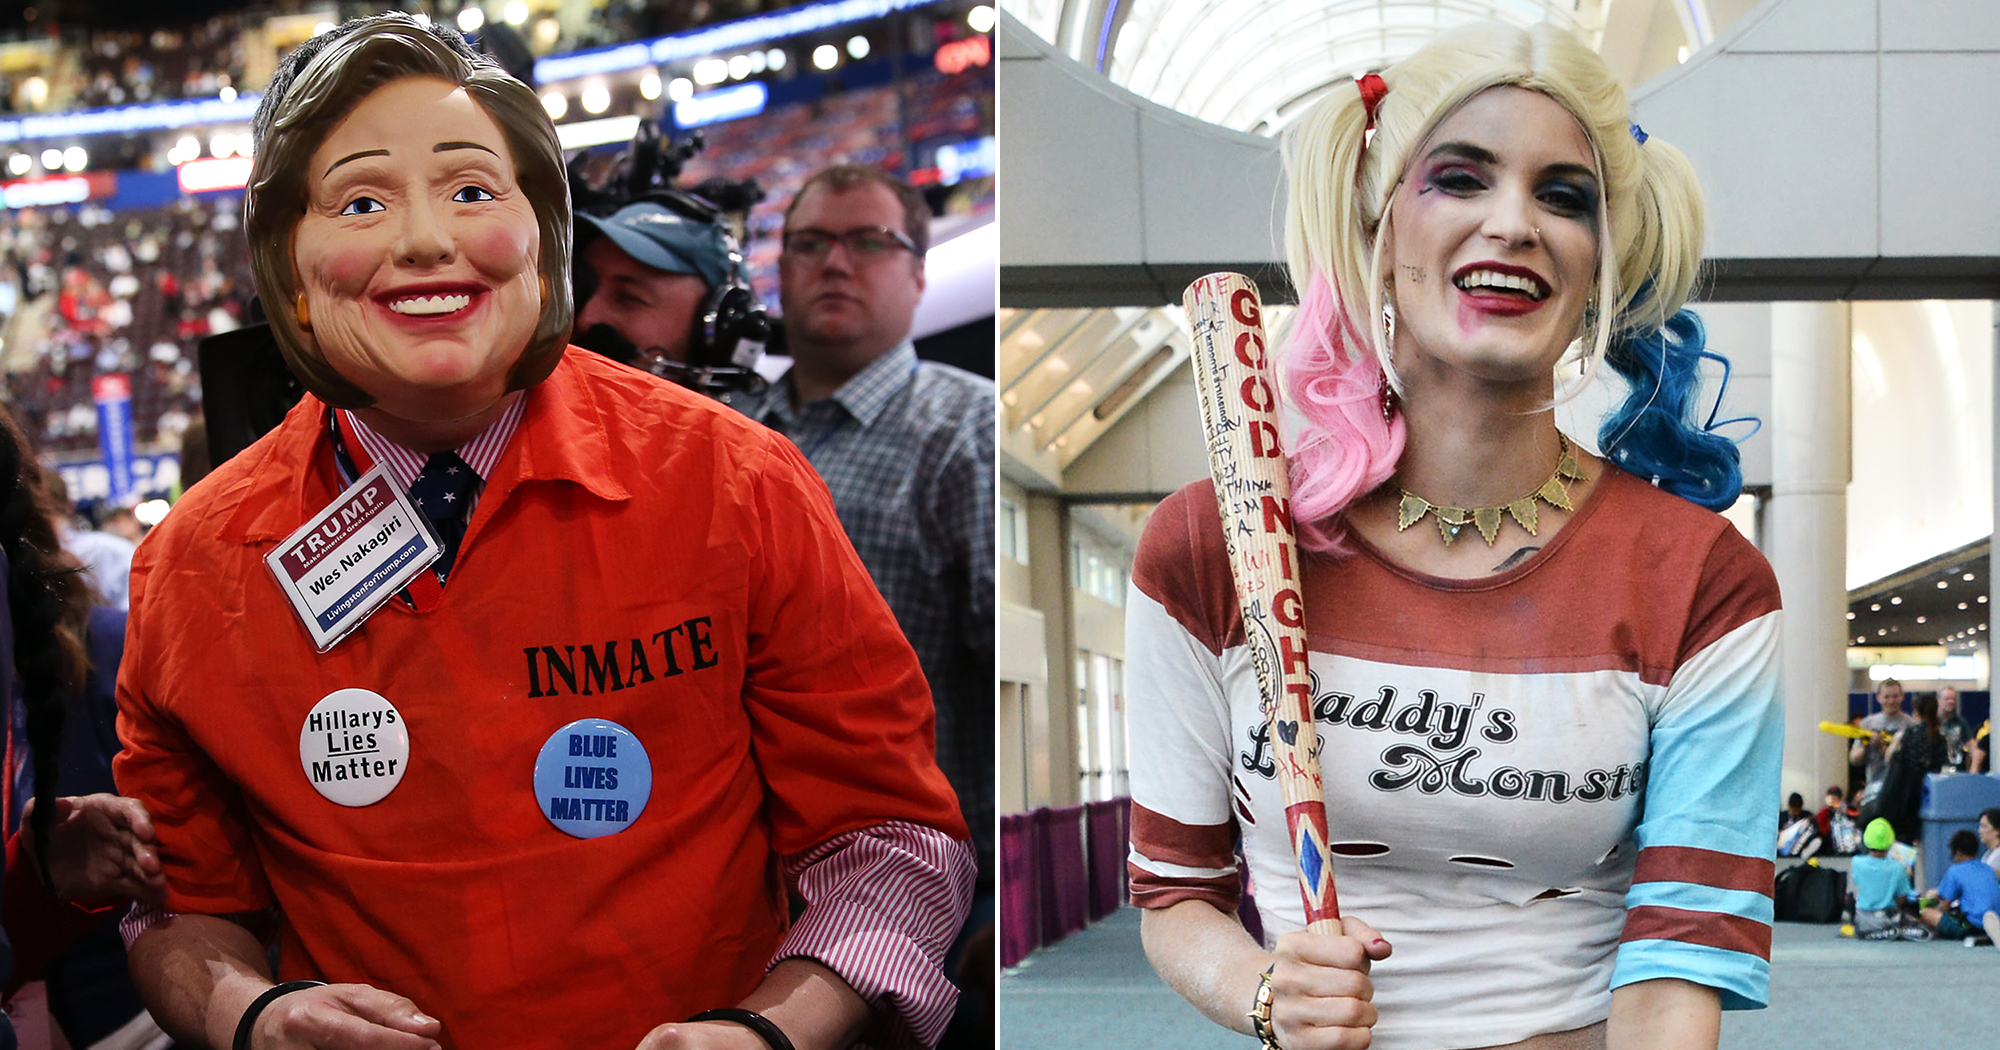 Attendees at the RNC, left, and at Comic-Con, right.